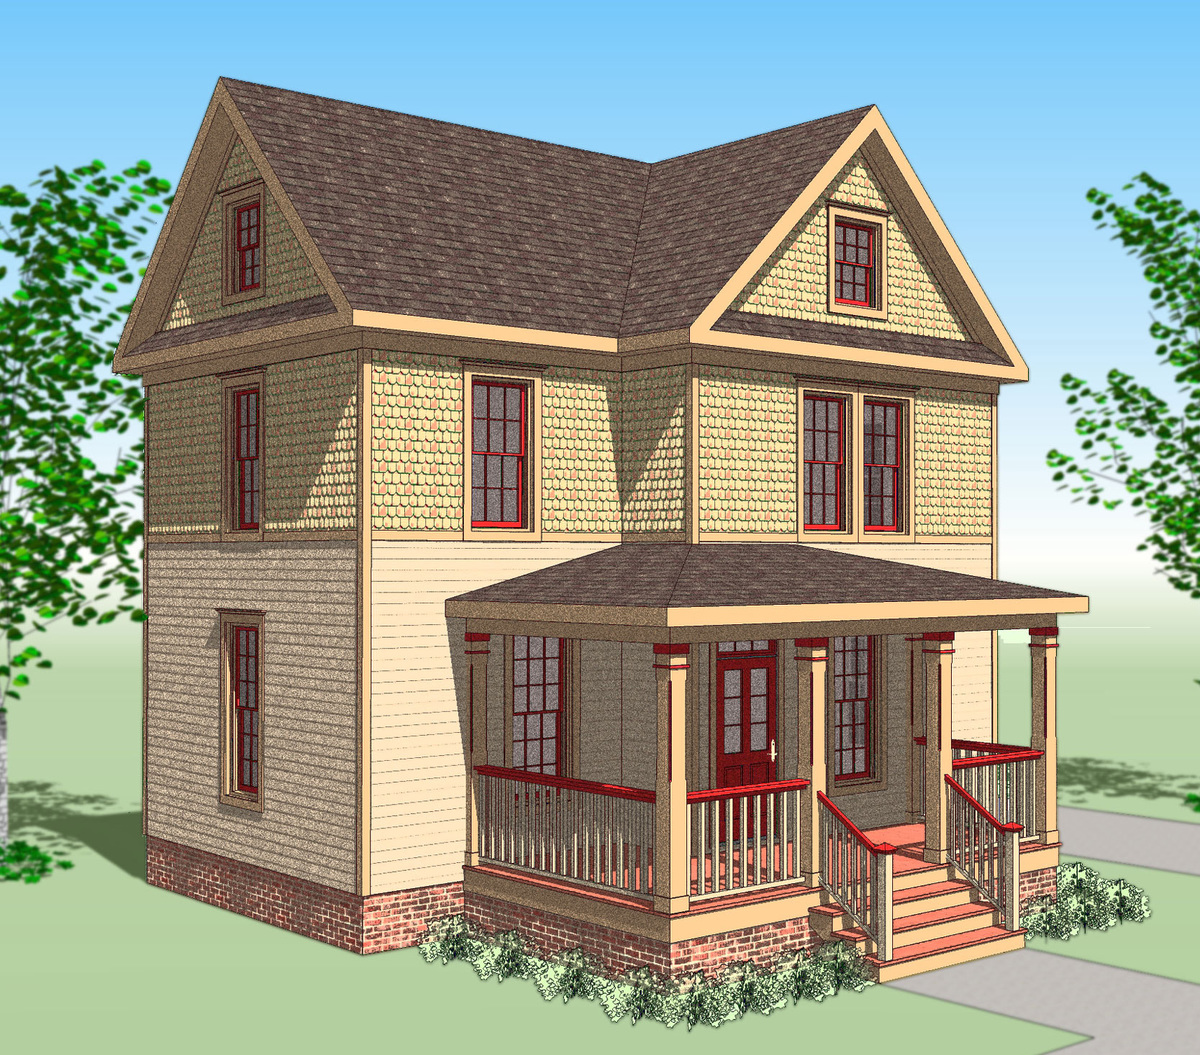 Compact victorian house plan 31516gf architectural designs house plans - Large victorian house plans ...